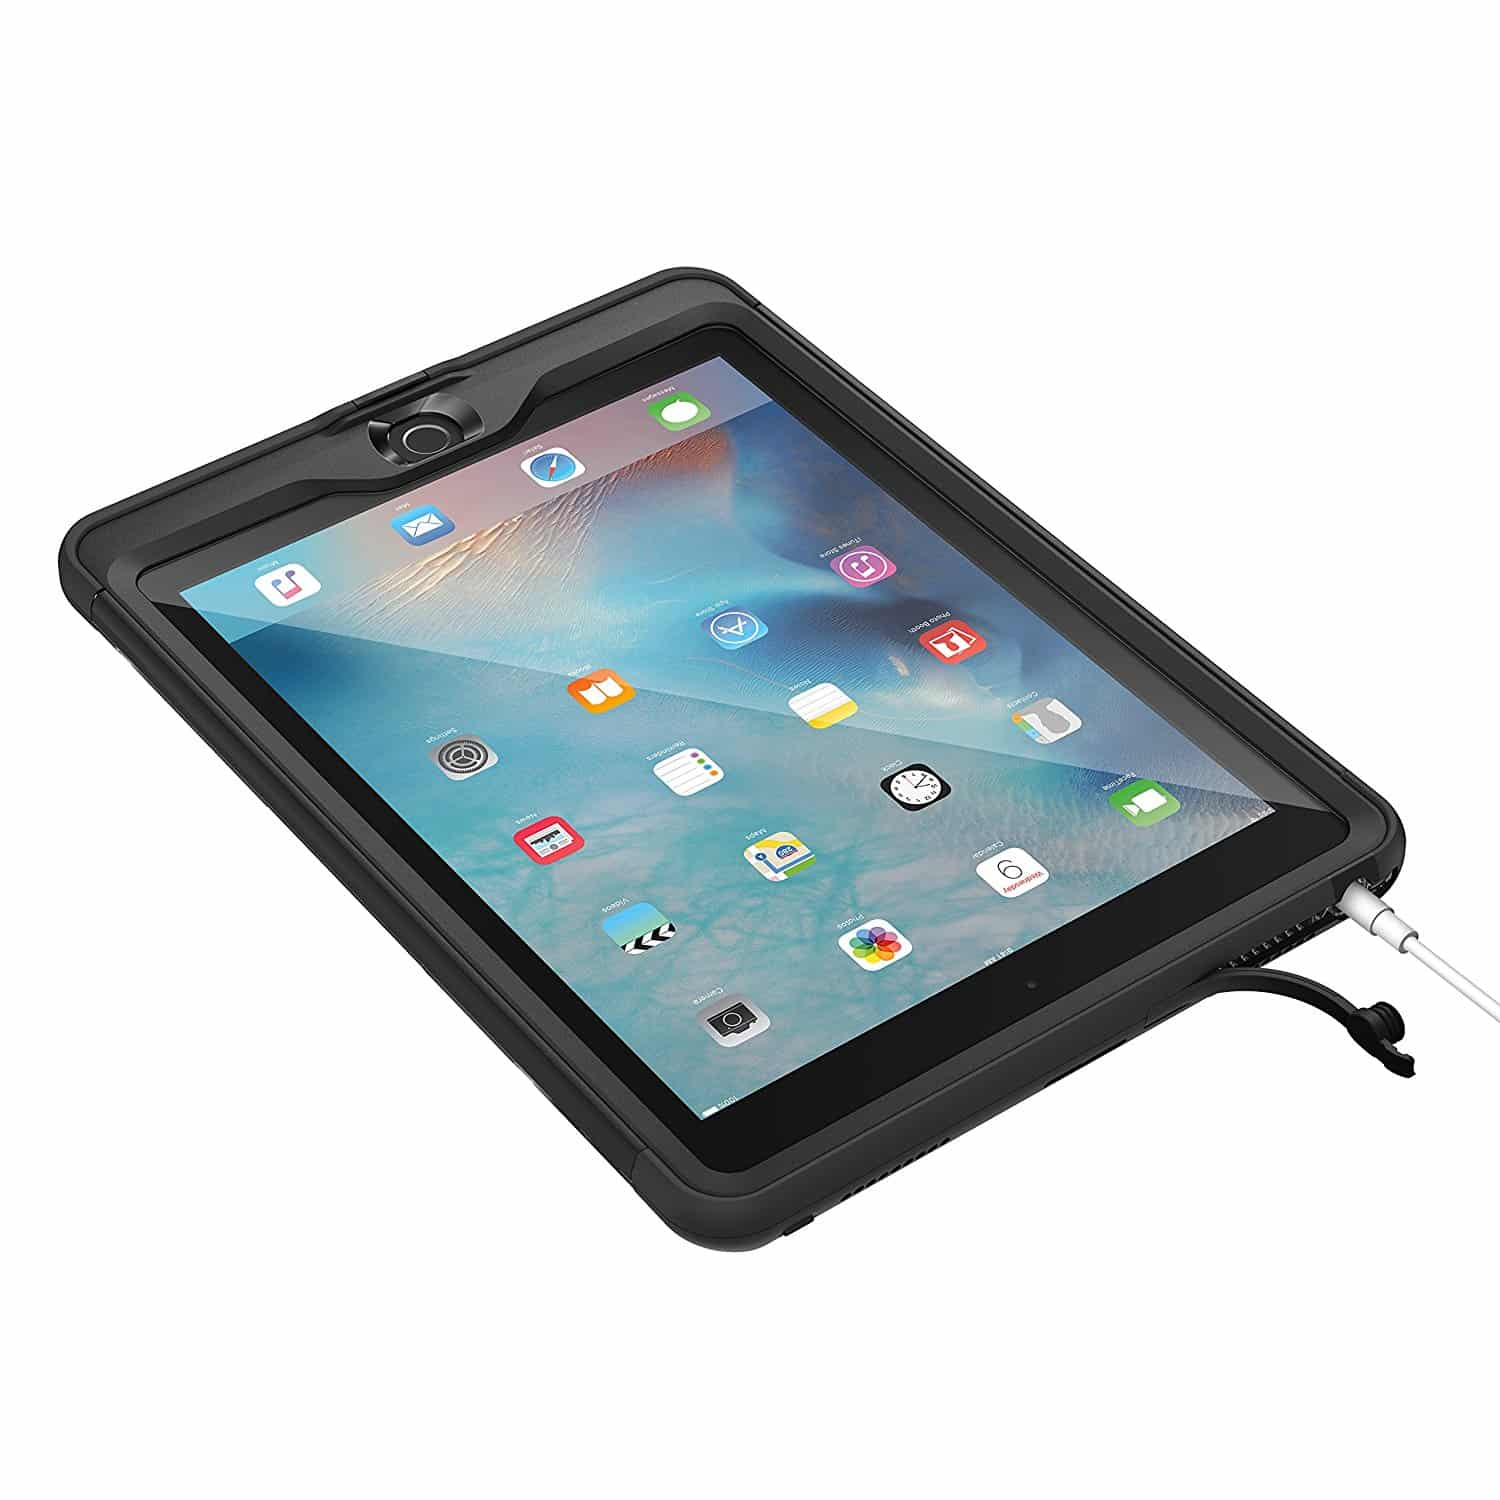 LifeproofNuud for iPad Pro 9.7 Inch case for construction workers